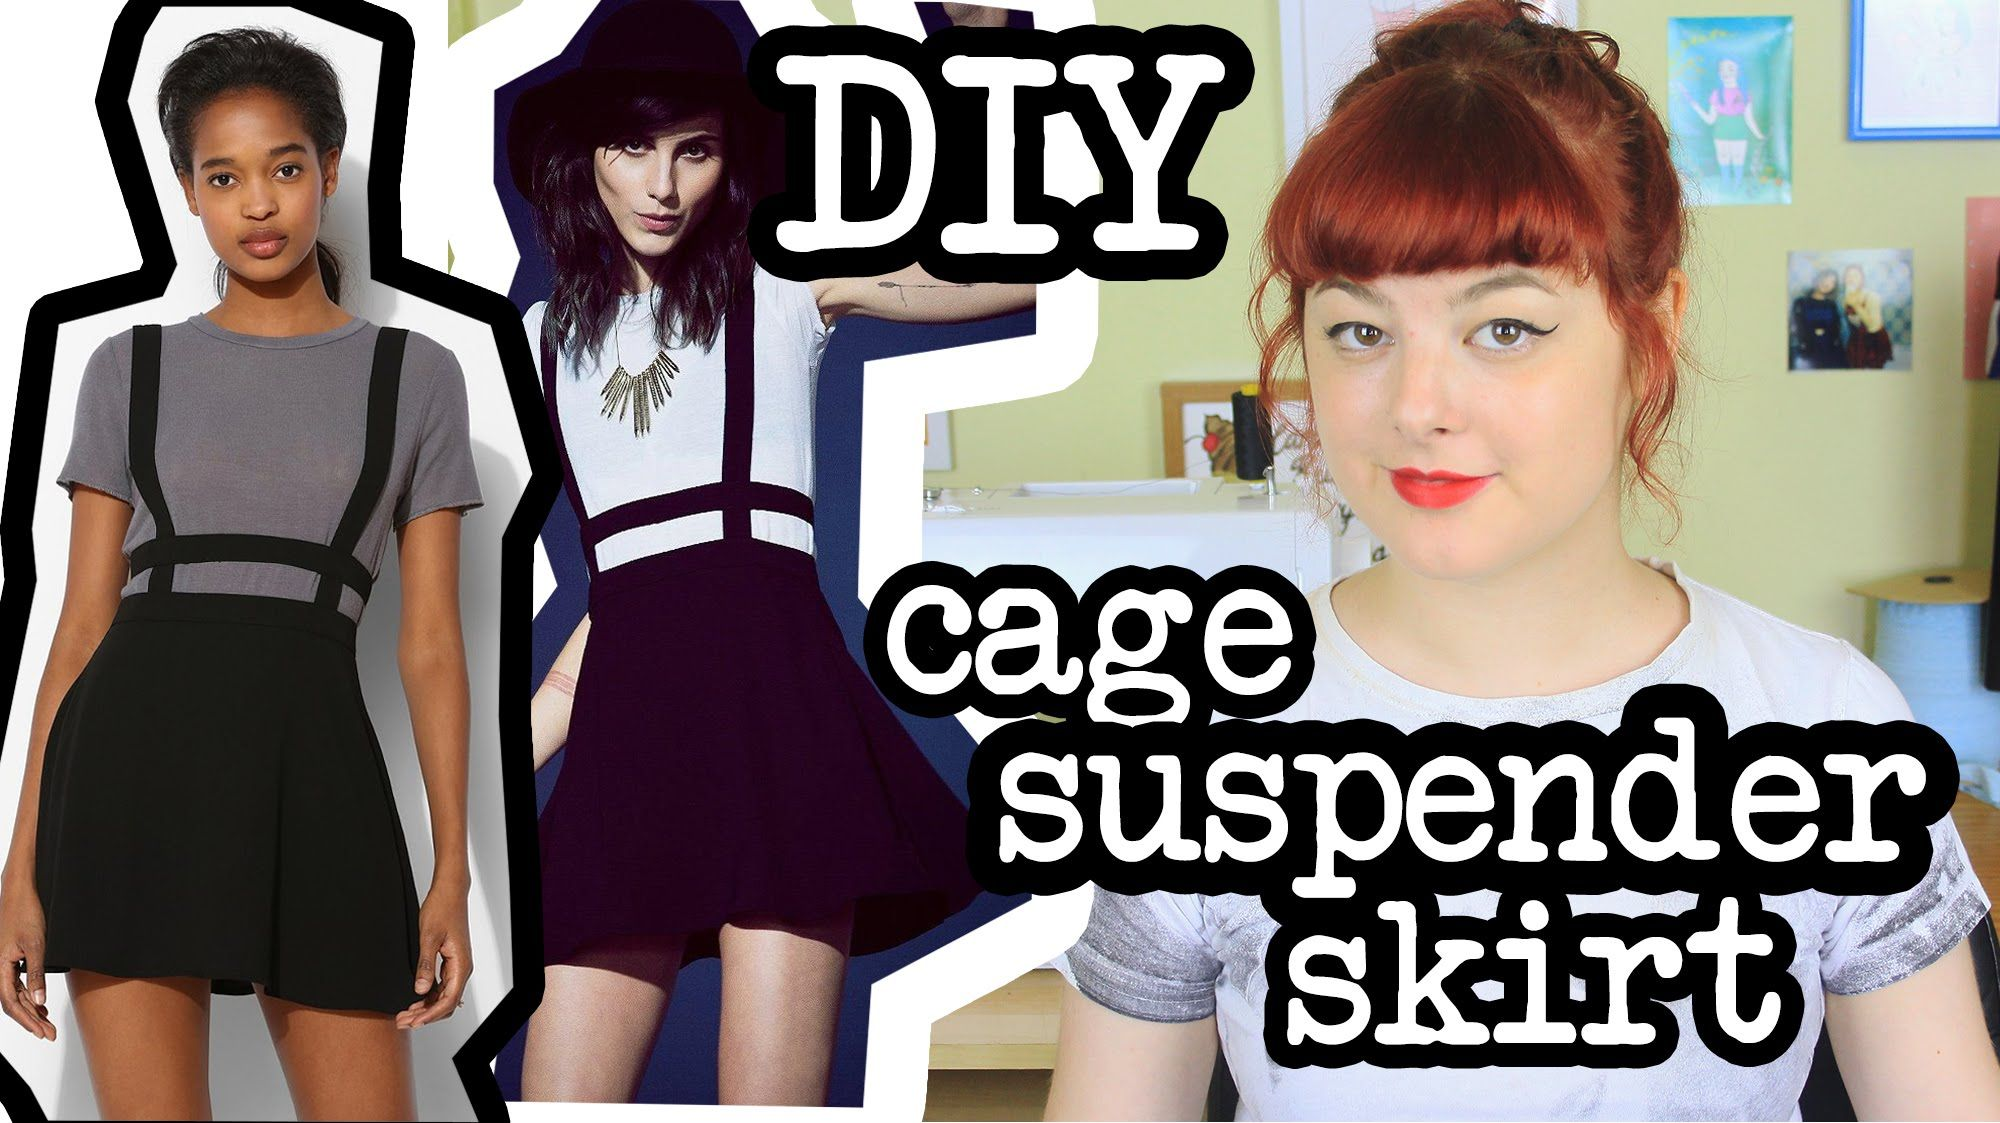 Learn how to make your own cage suspender skirt with this simple tutorial. Support me on Patreon! https://www.patreon.com/annikavictoria DIY circle skirt tut...